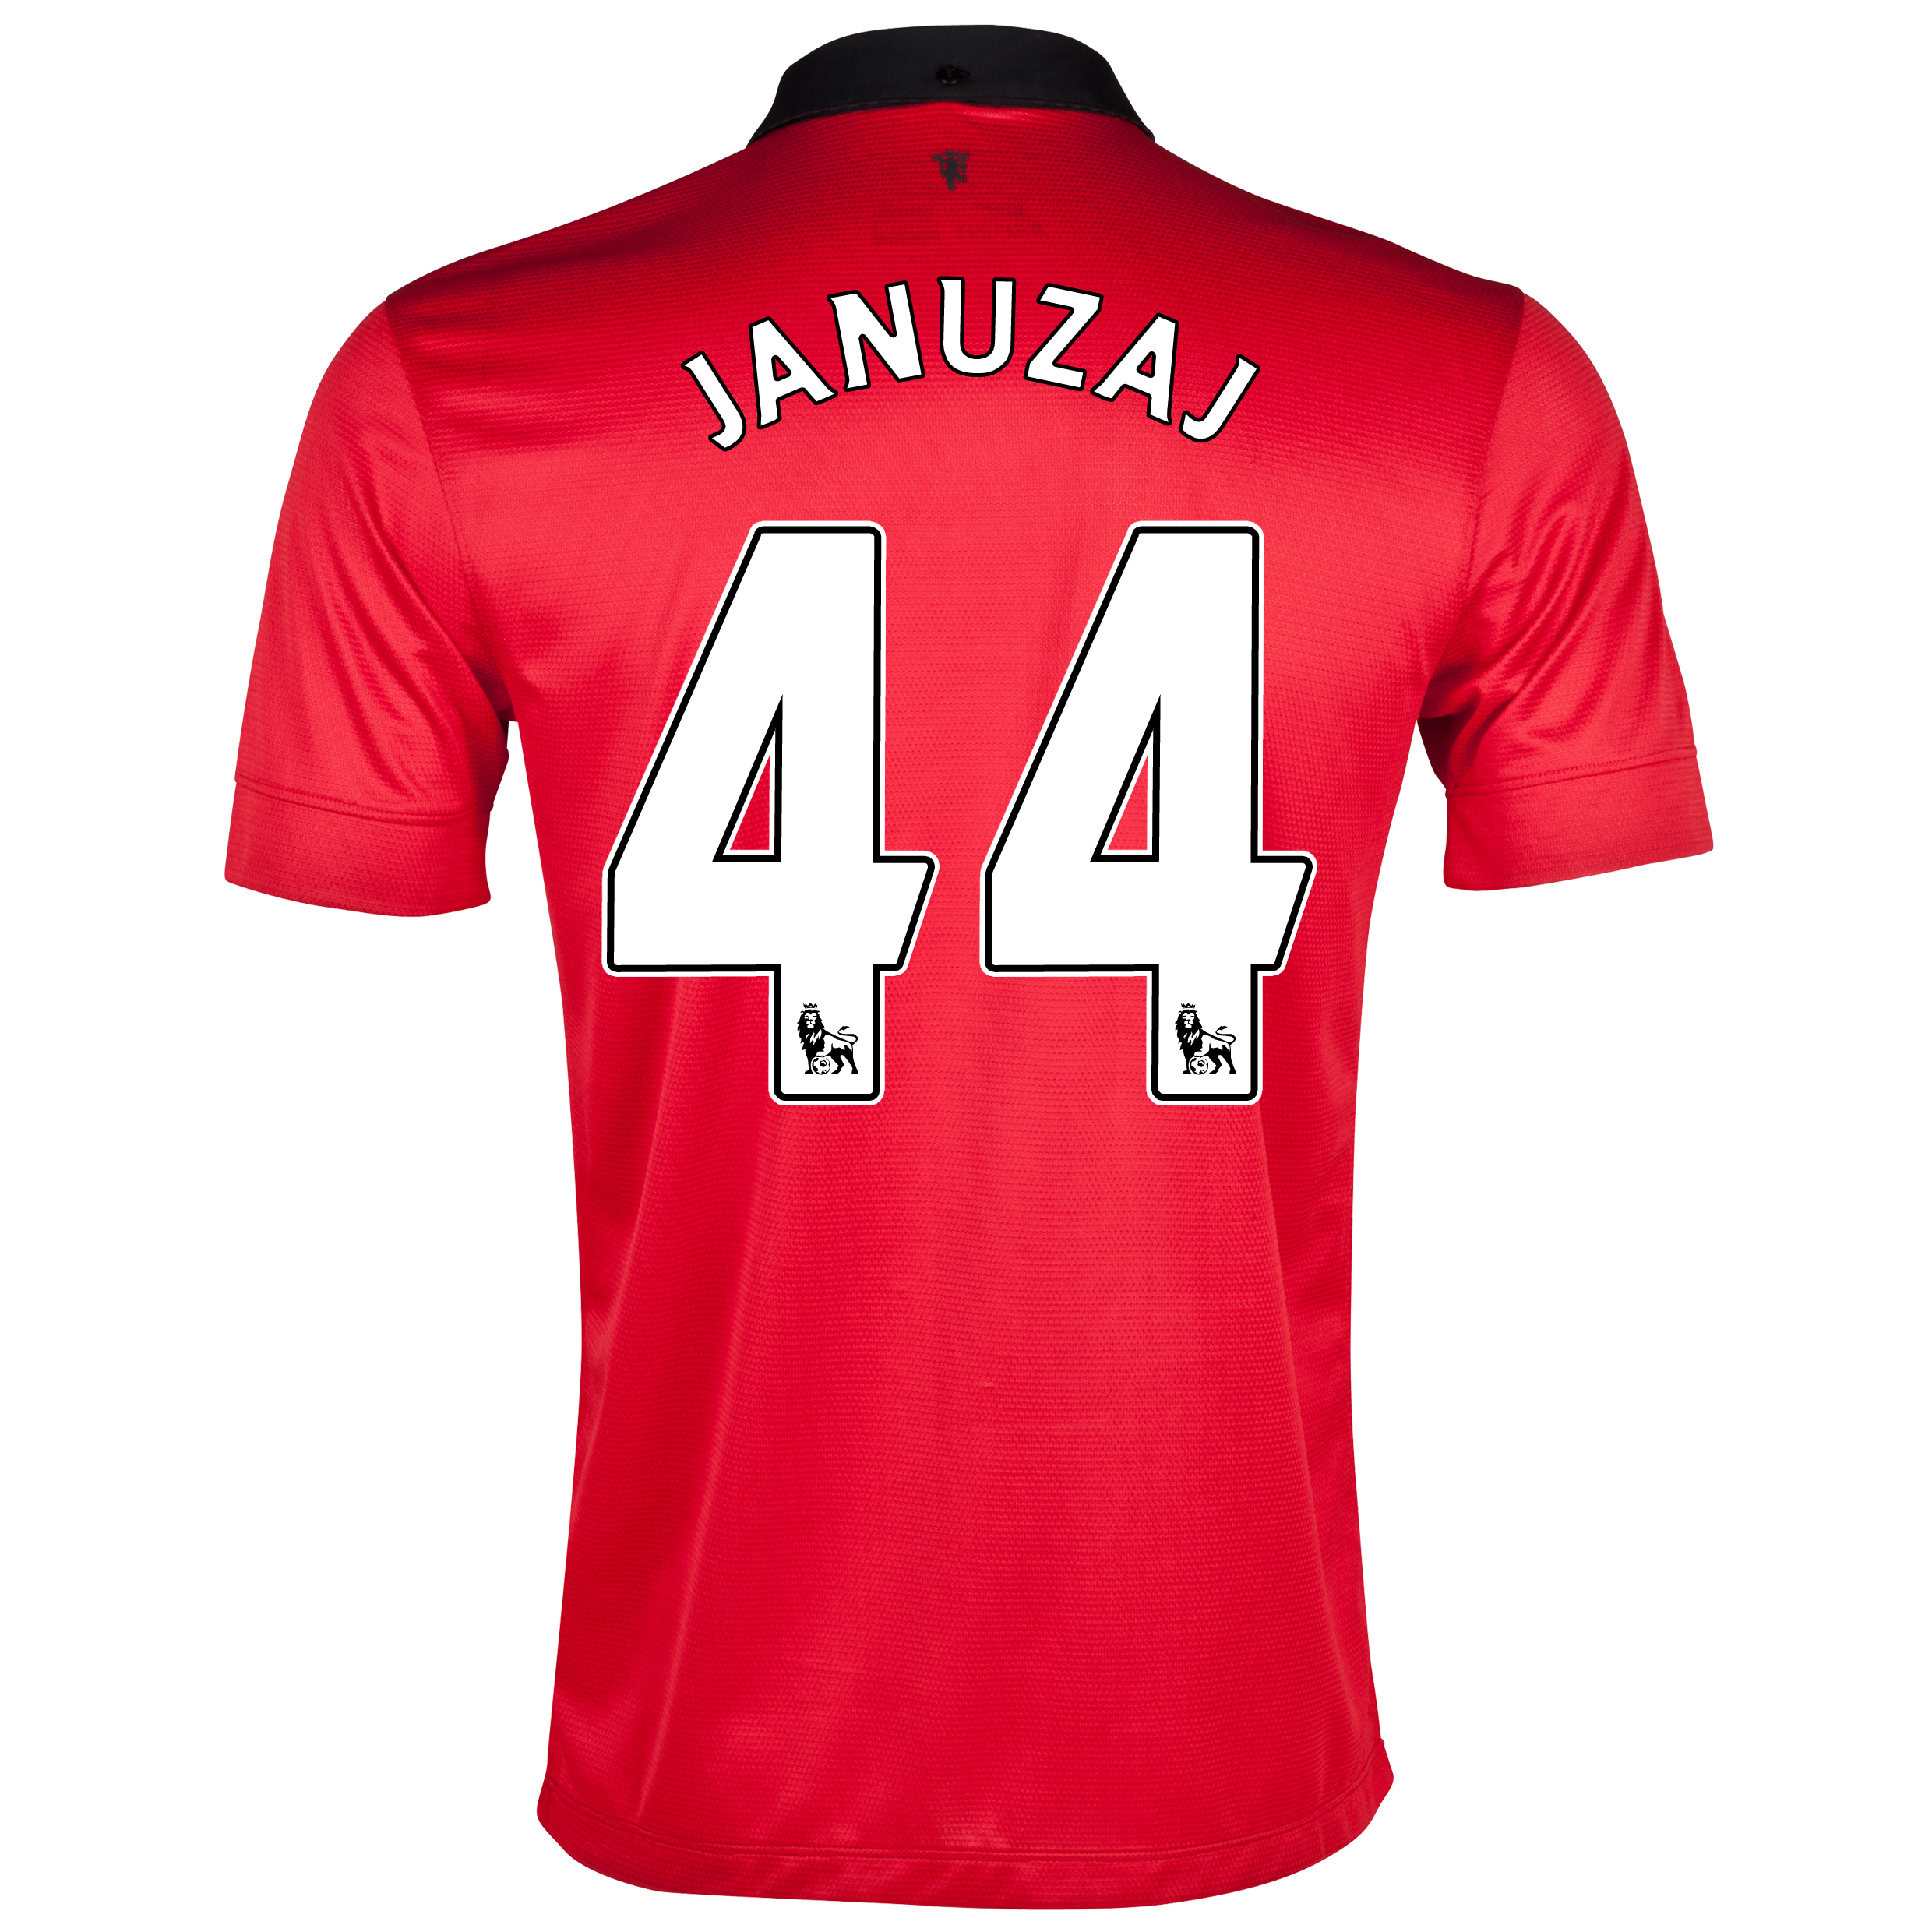 Manchester United Home Shirt 2013/14 with Januzaj 44 printing